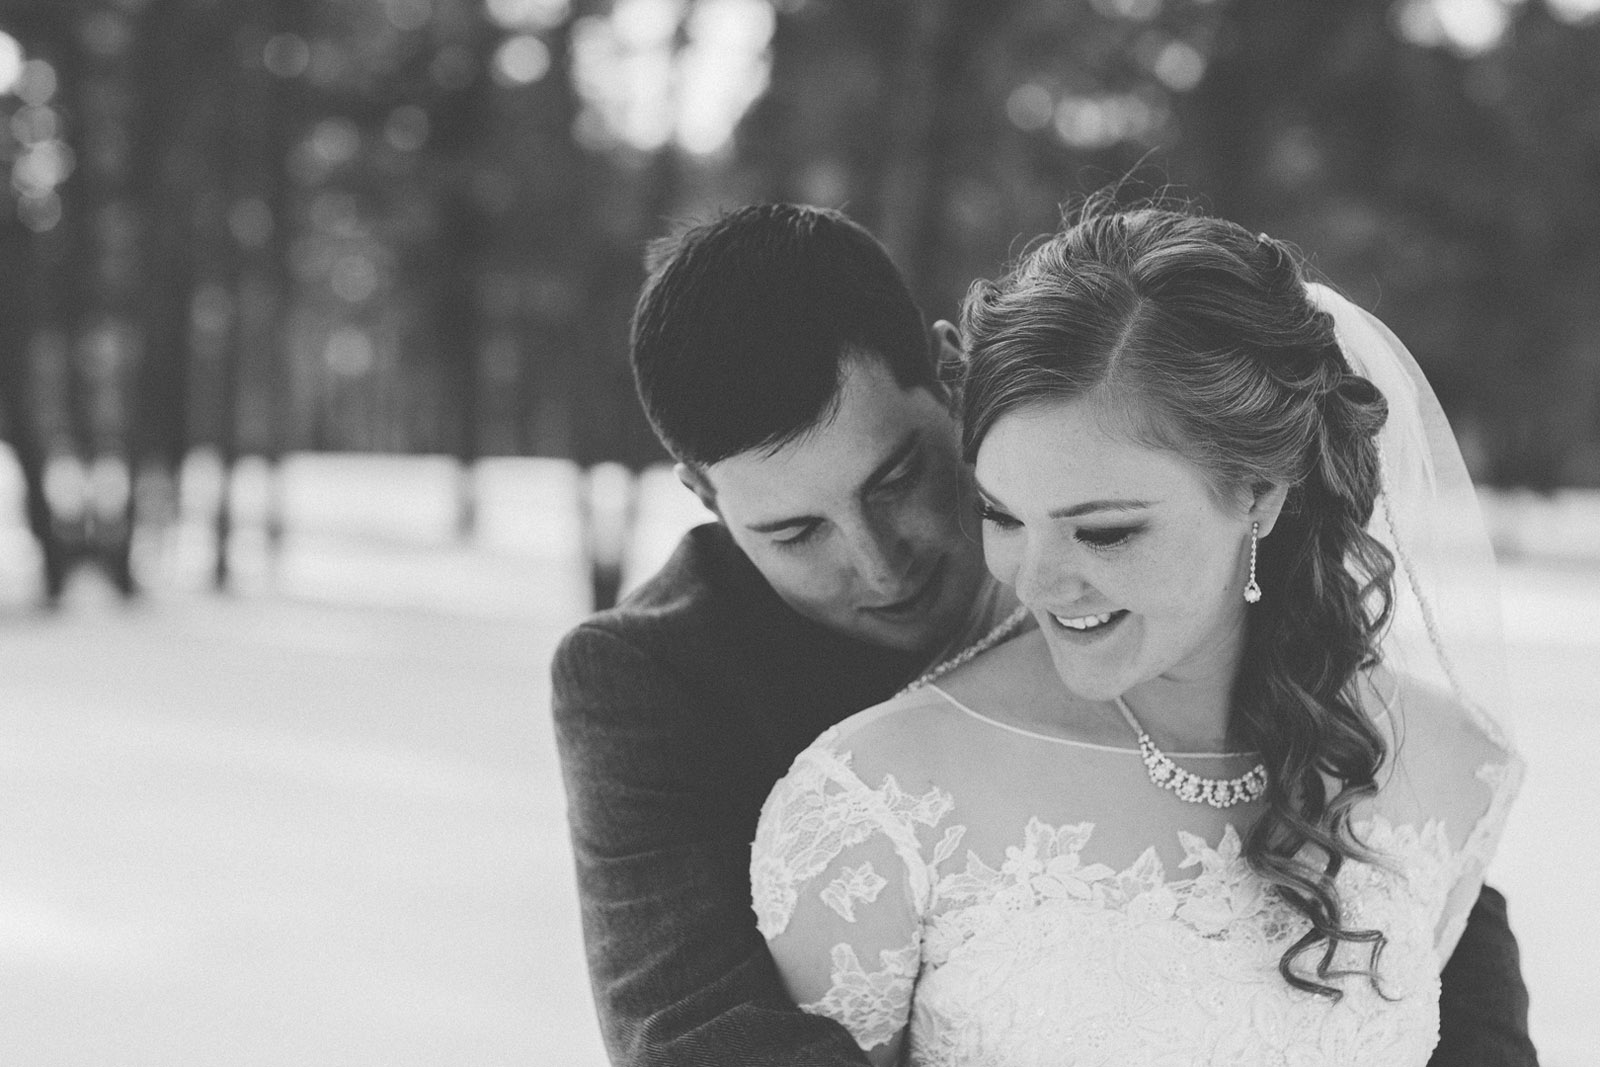 166-wedding-photographer-captures-newlyweds-in-snow-during-a-winter-snow-wedding-in-the-mountains-in-colorado